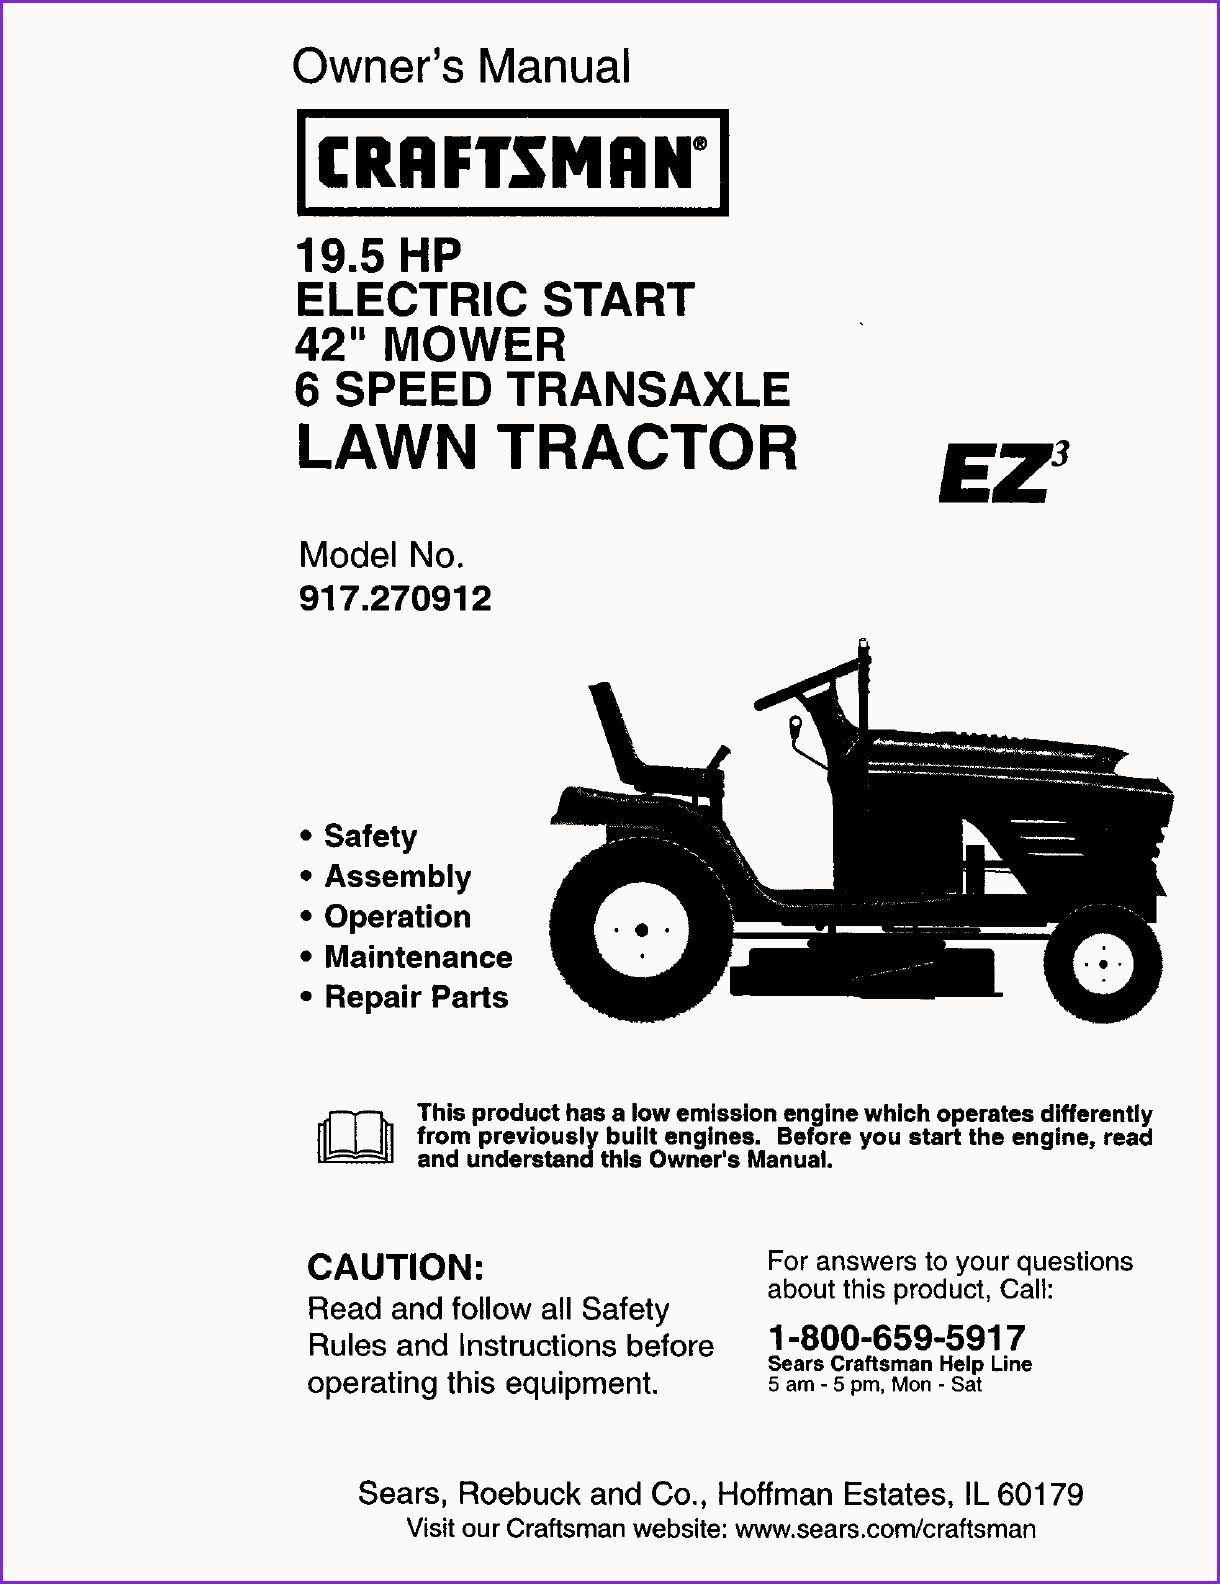 Awesome How To Level A Craftsman Riding Mower Deck Craftsman Riding Lawn Mower Deck Riding Lawn Mowers